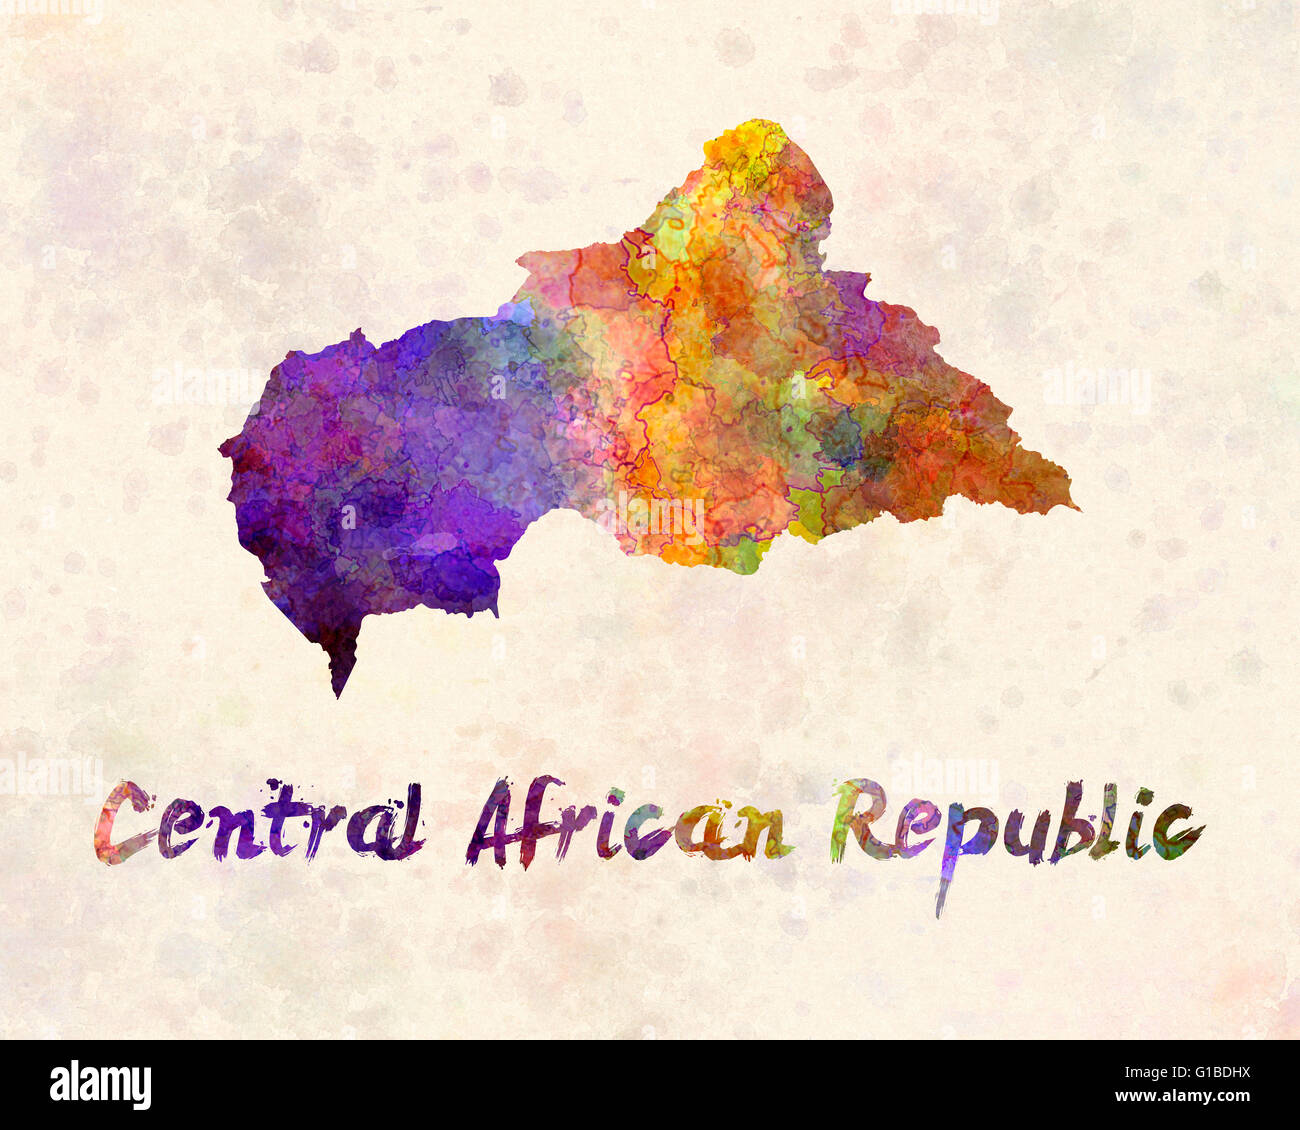 Central African Republic in watercolor - Stock Image